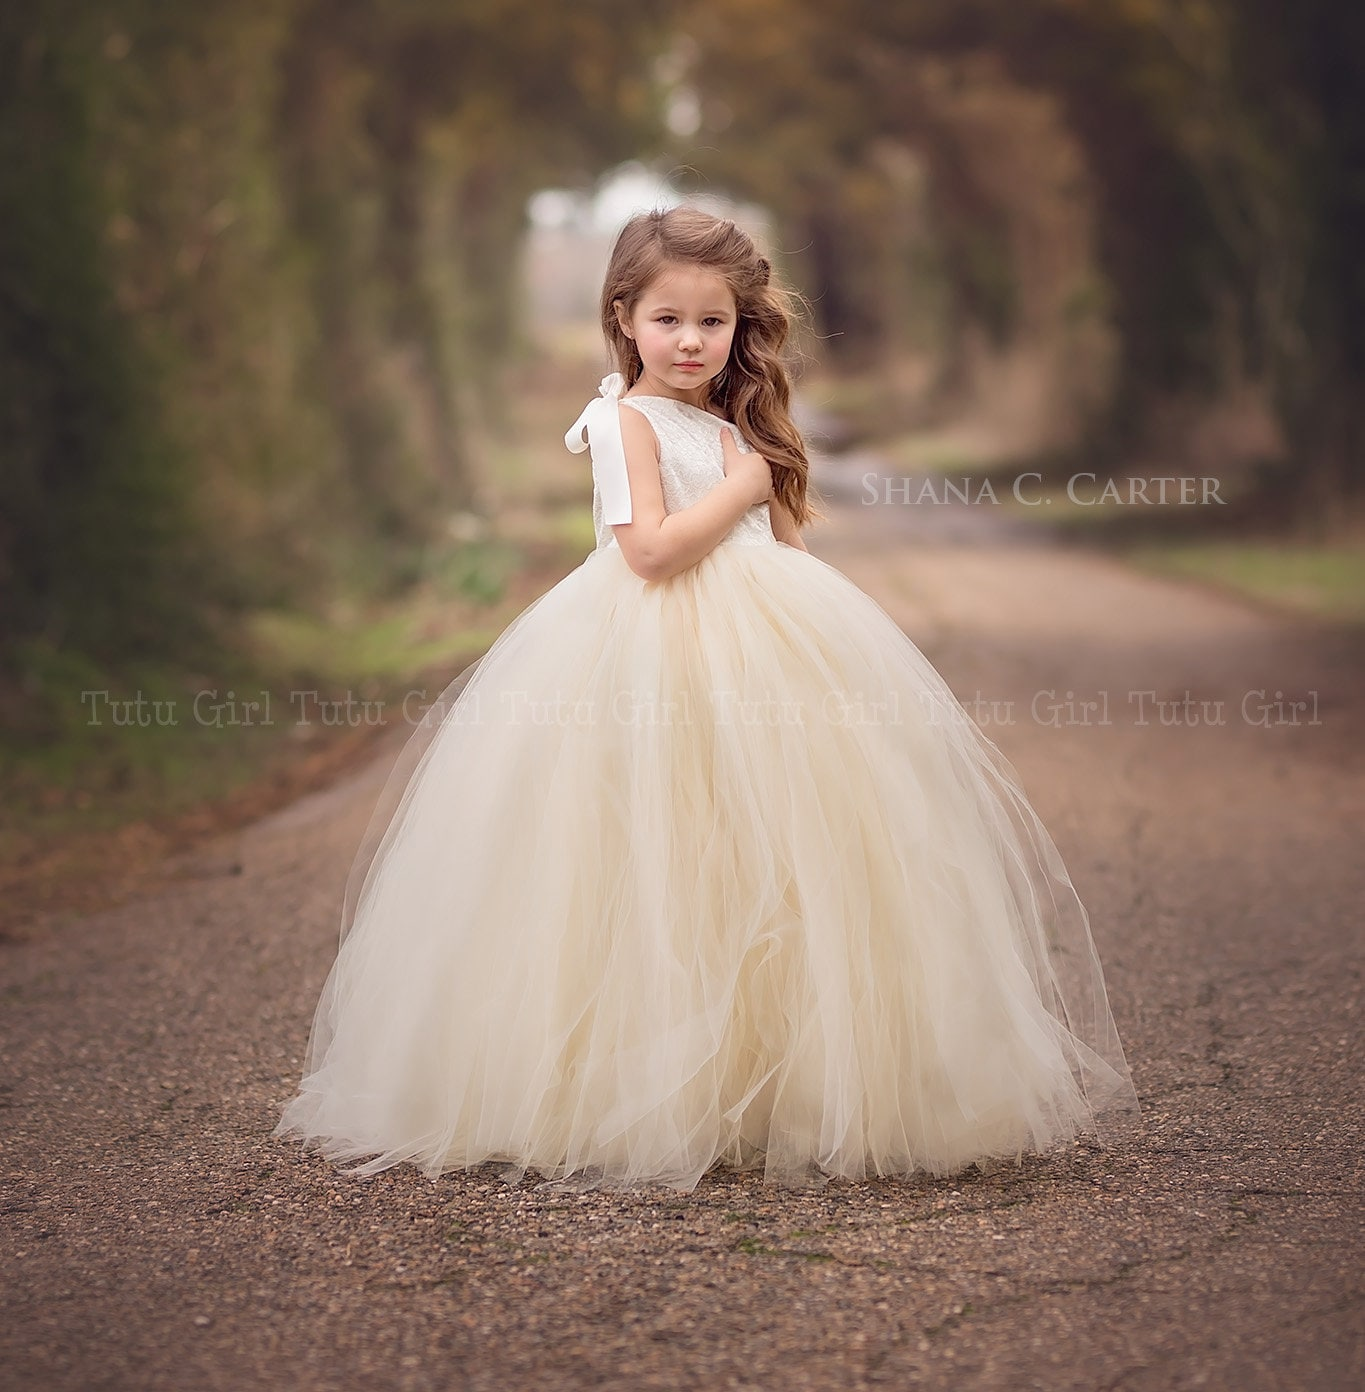 57f8e0ceb3f3f Lace Flower Girl Dress Ivory Lace Flower Girl Dress with Champagne Tutu  Style One Strap Off the Shoulder Tulle Dress for Girls